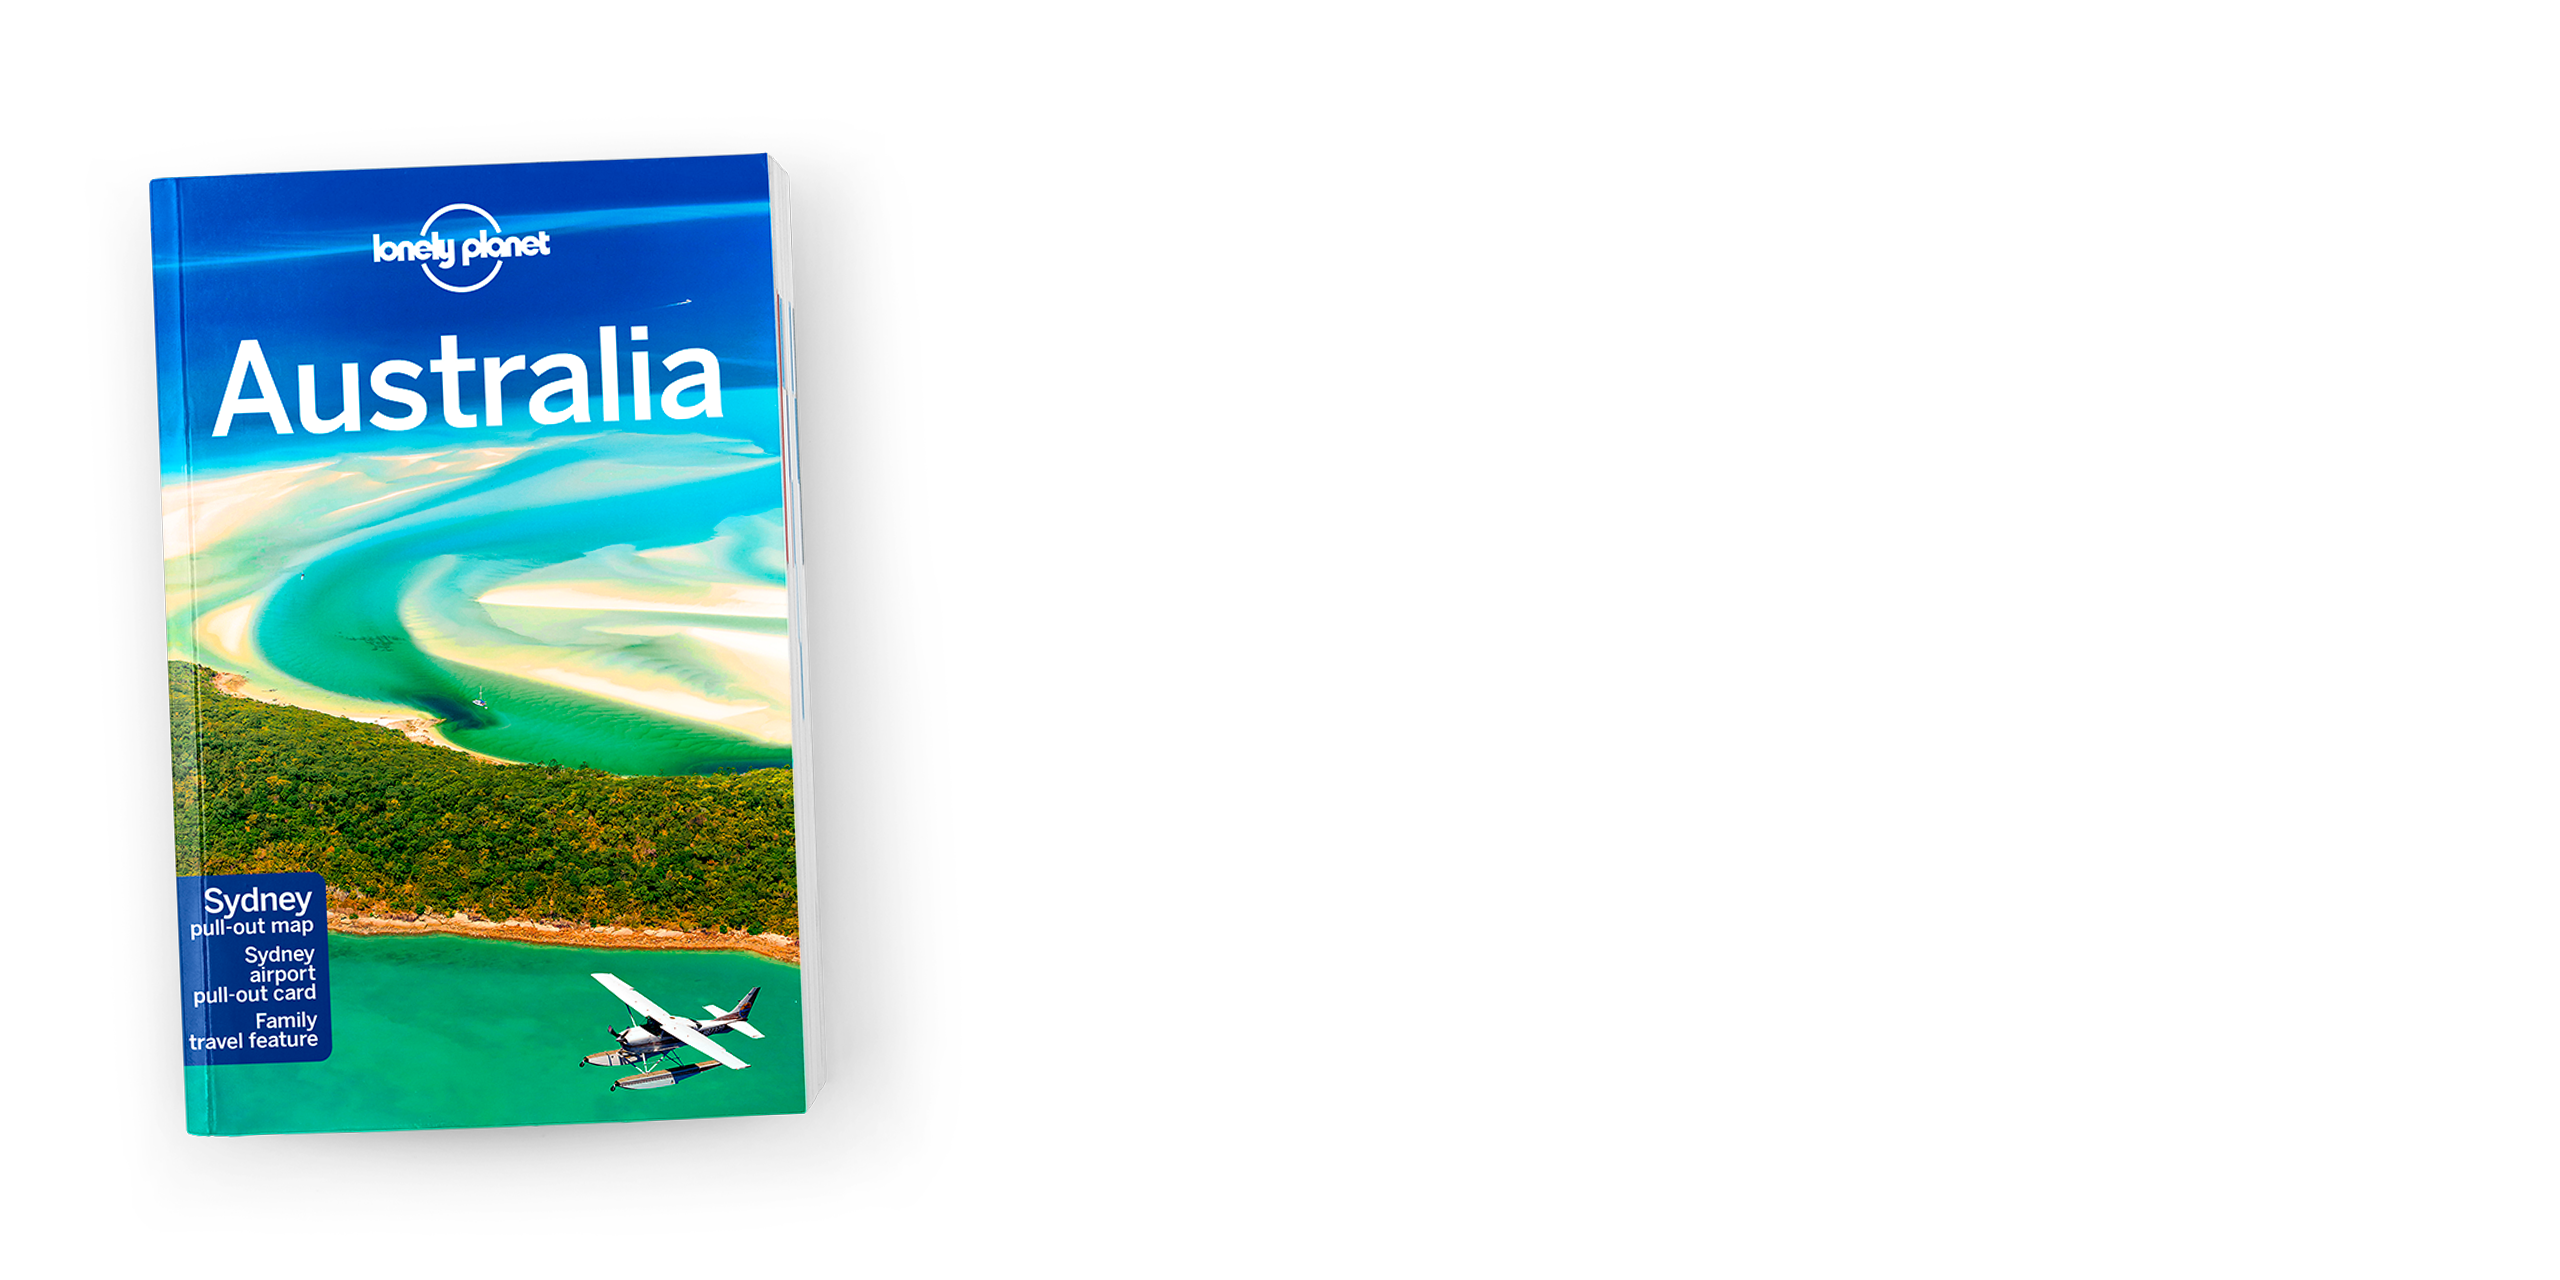 Lonely Planet's Australia guide 20th edition out now